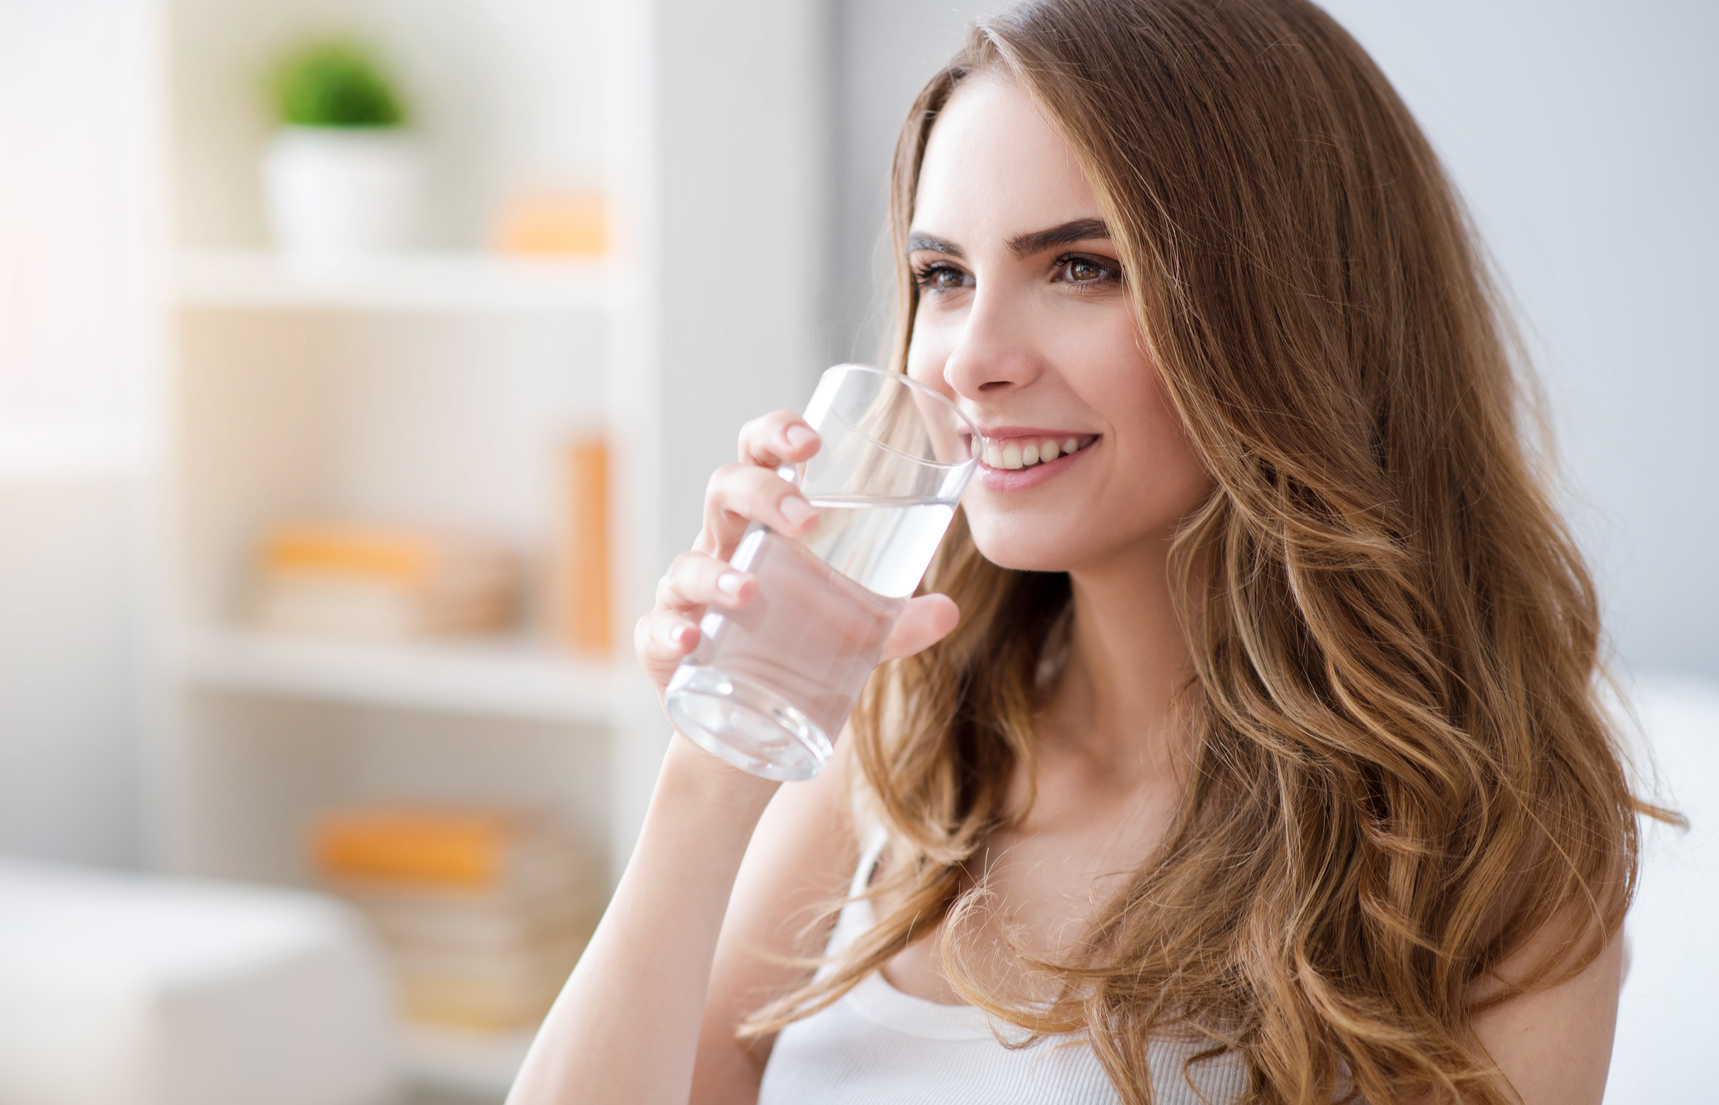 My dose of positivity. Cheerful delighted beautiful woman holding glass and drinking water while smiling